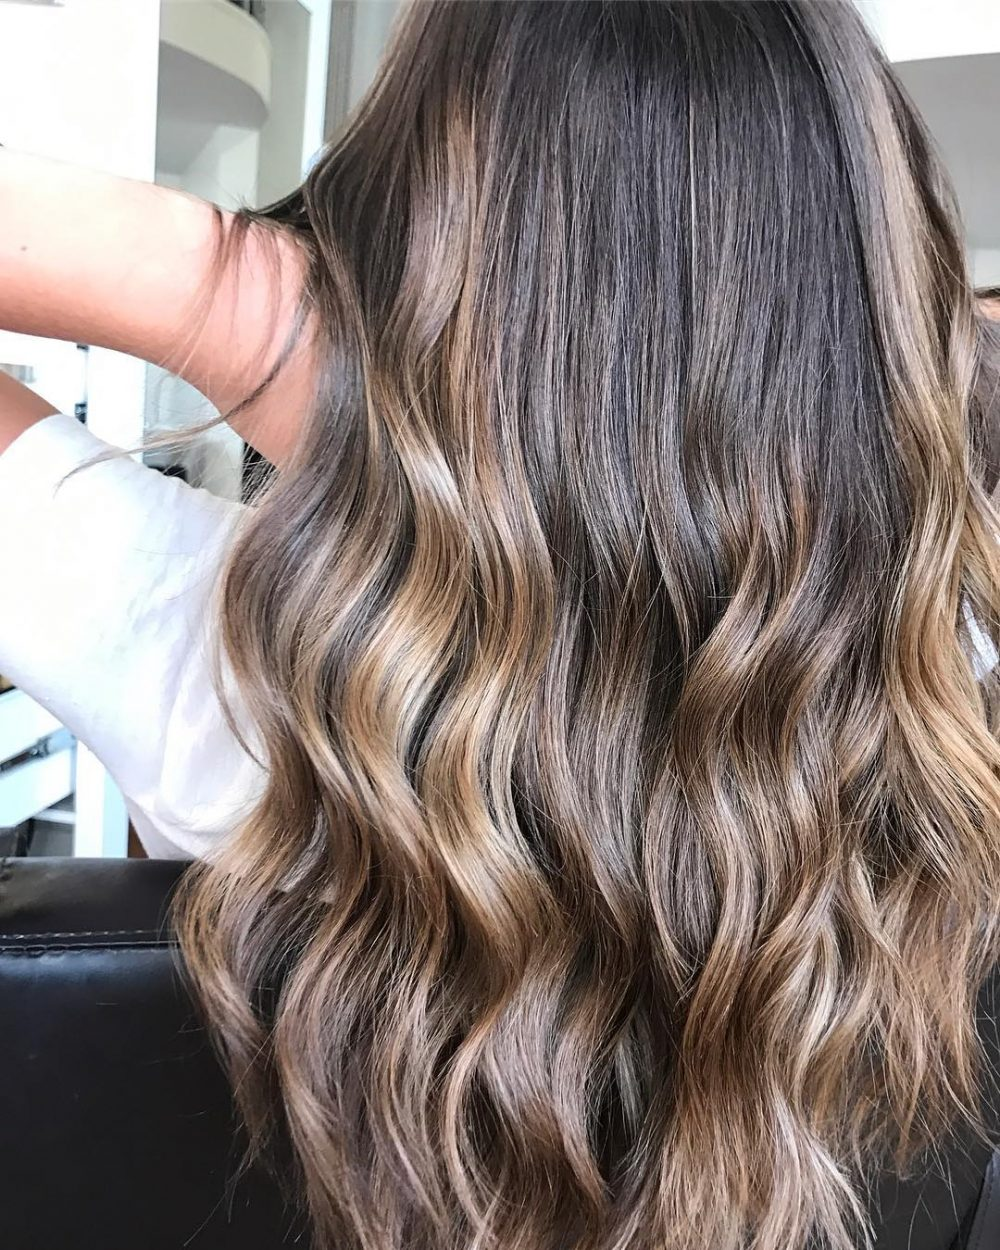 Bright Caramel Waves hairstyle